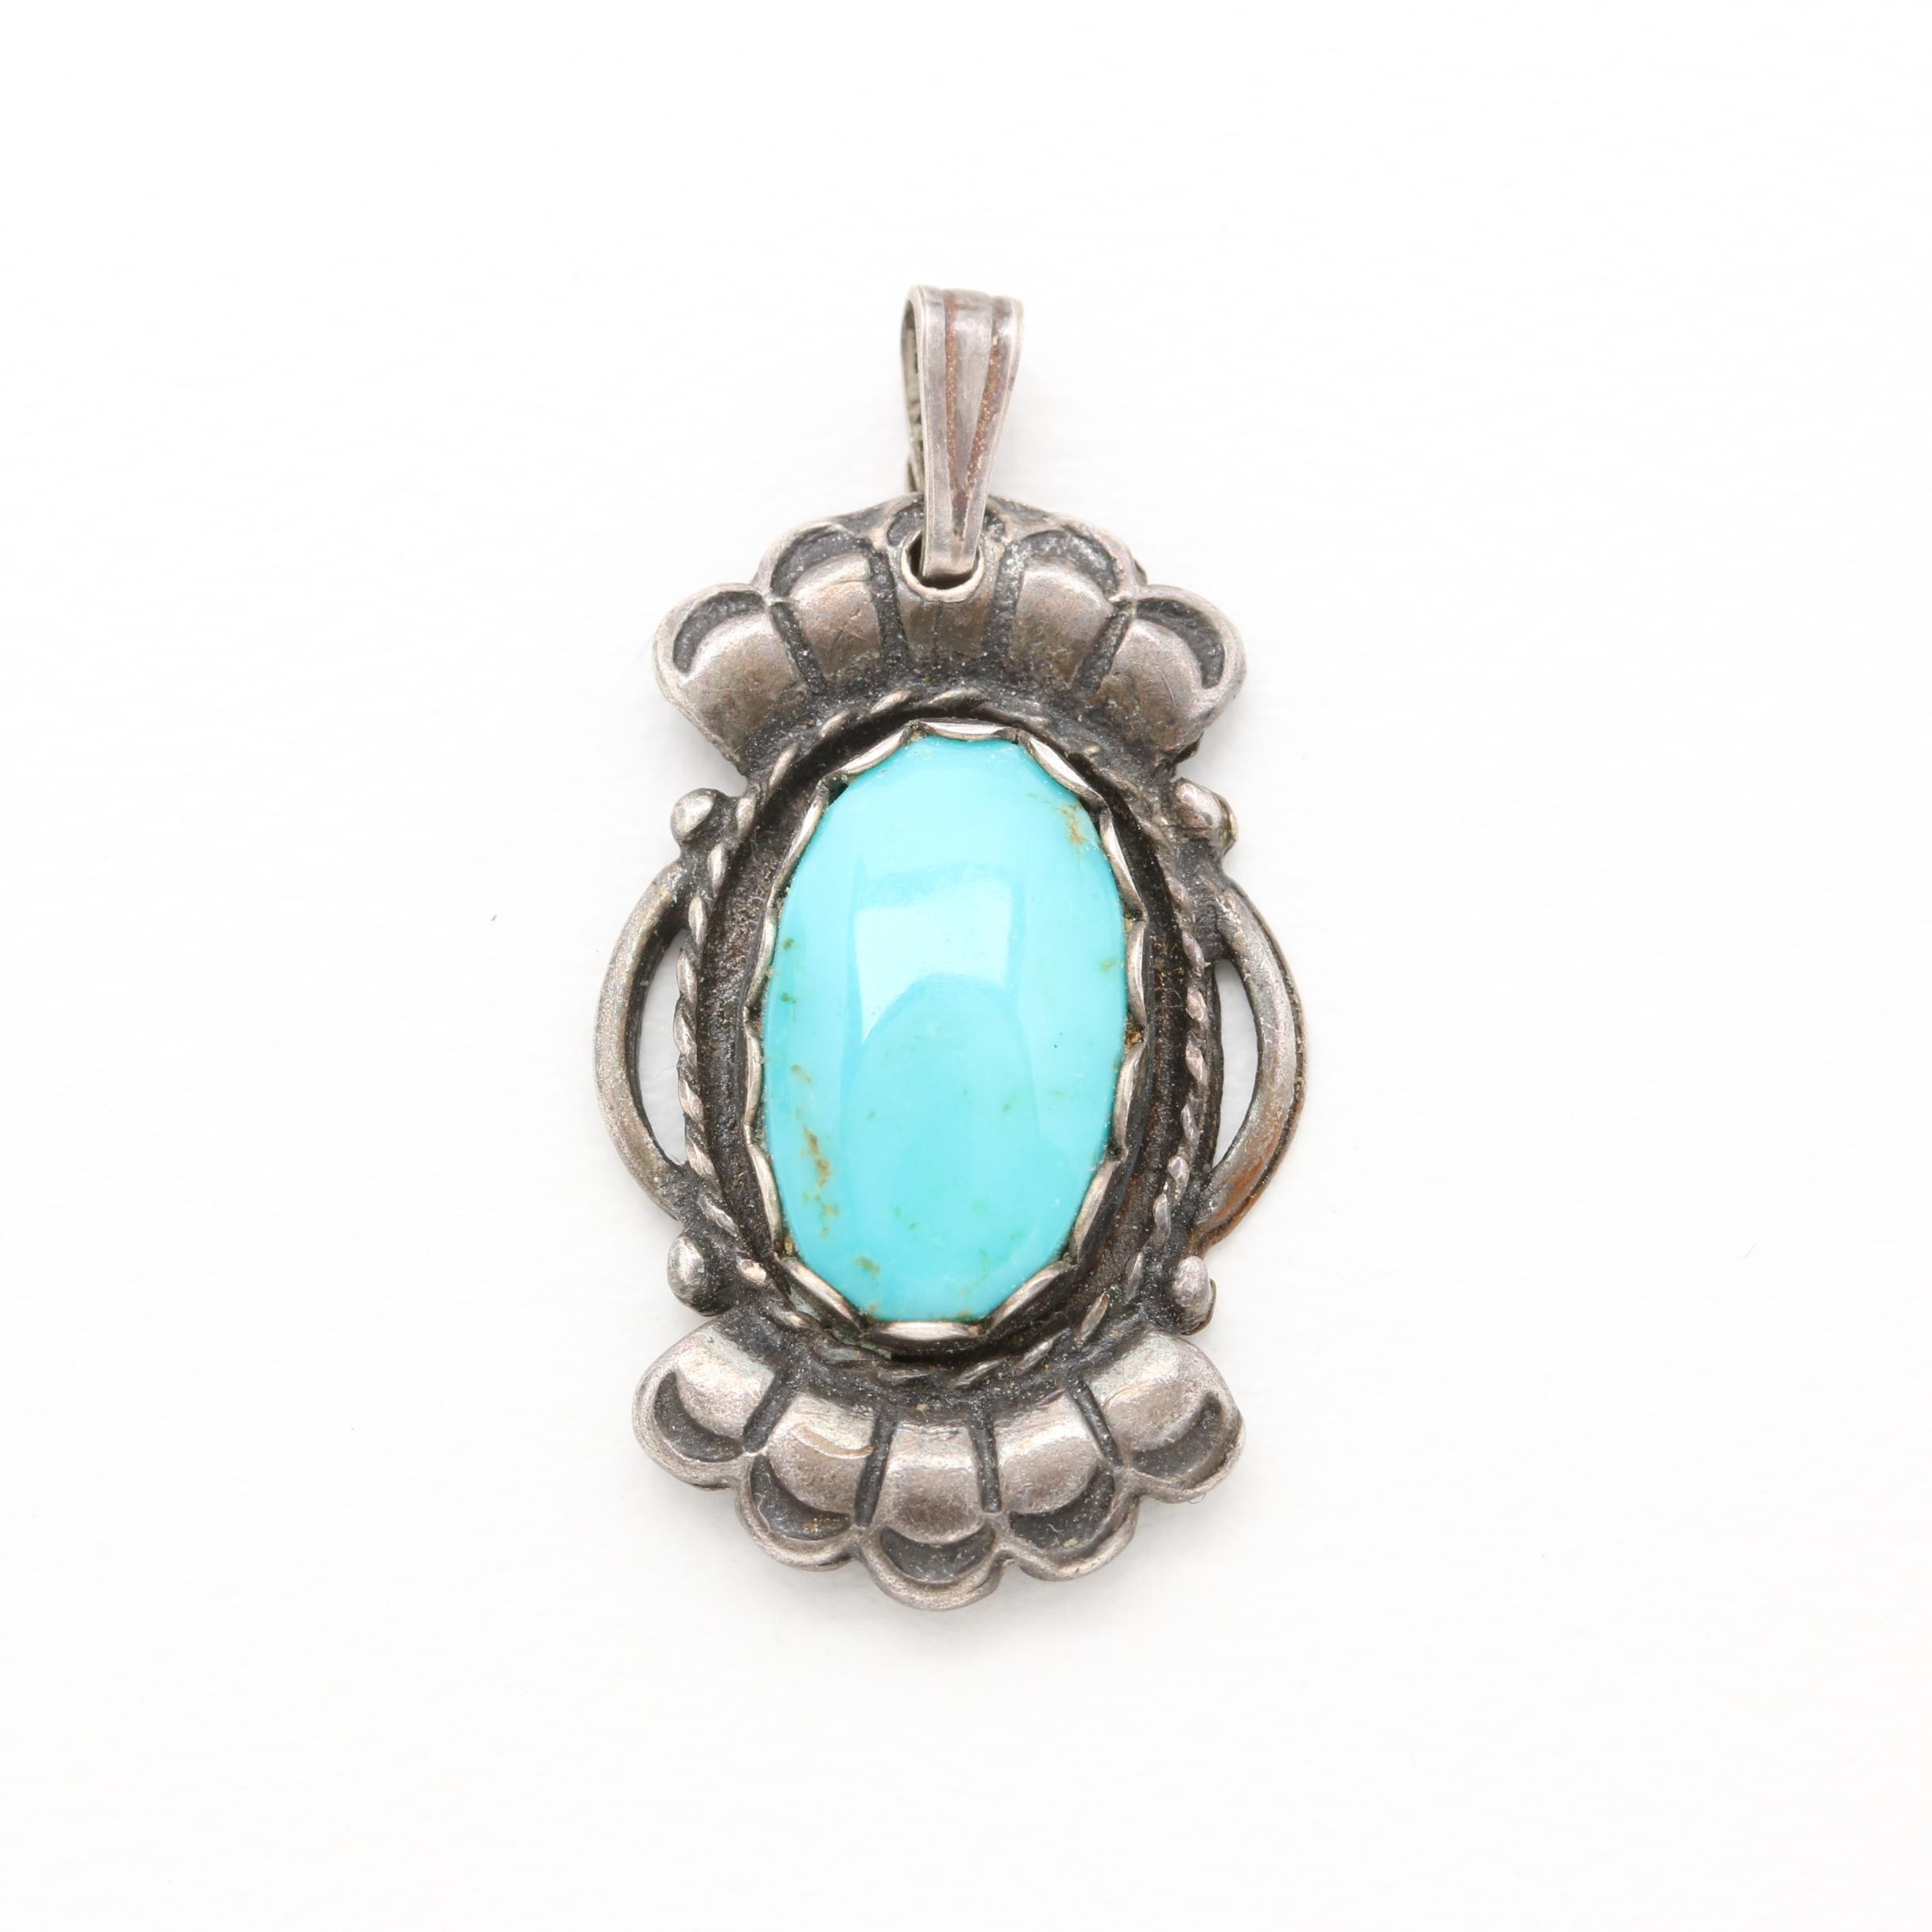 Vintage Southwest Style Sterling Silver Turquoise Pendant